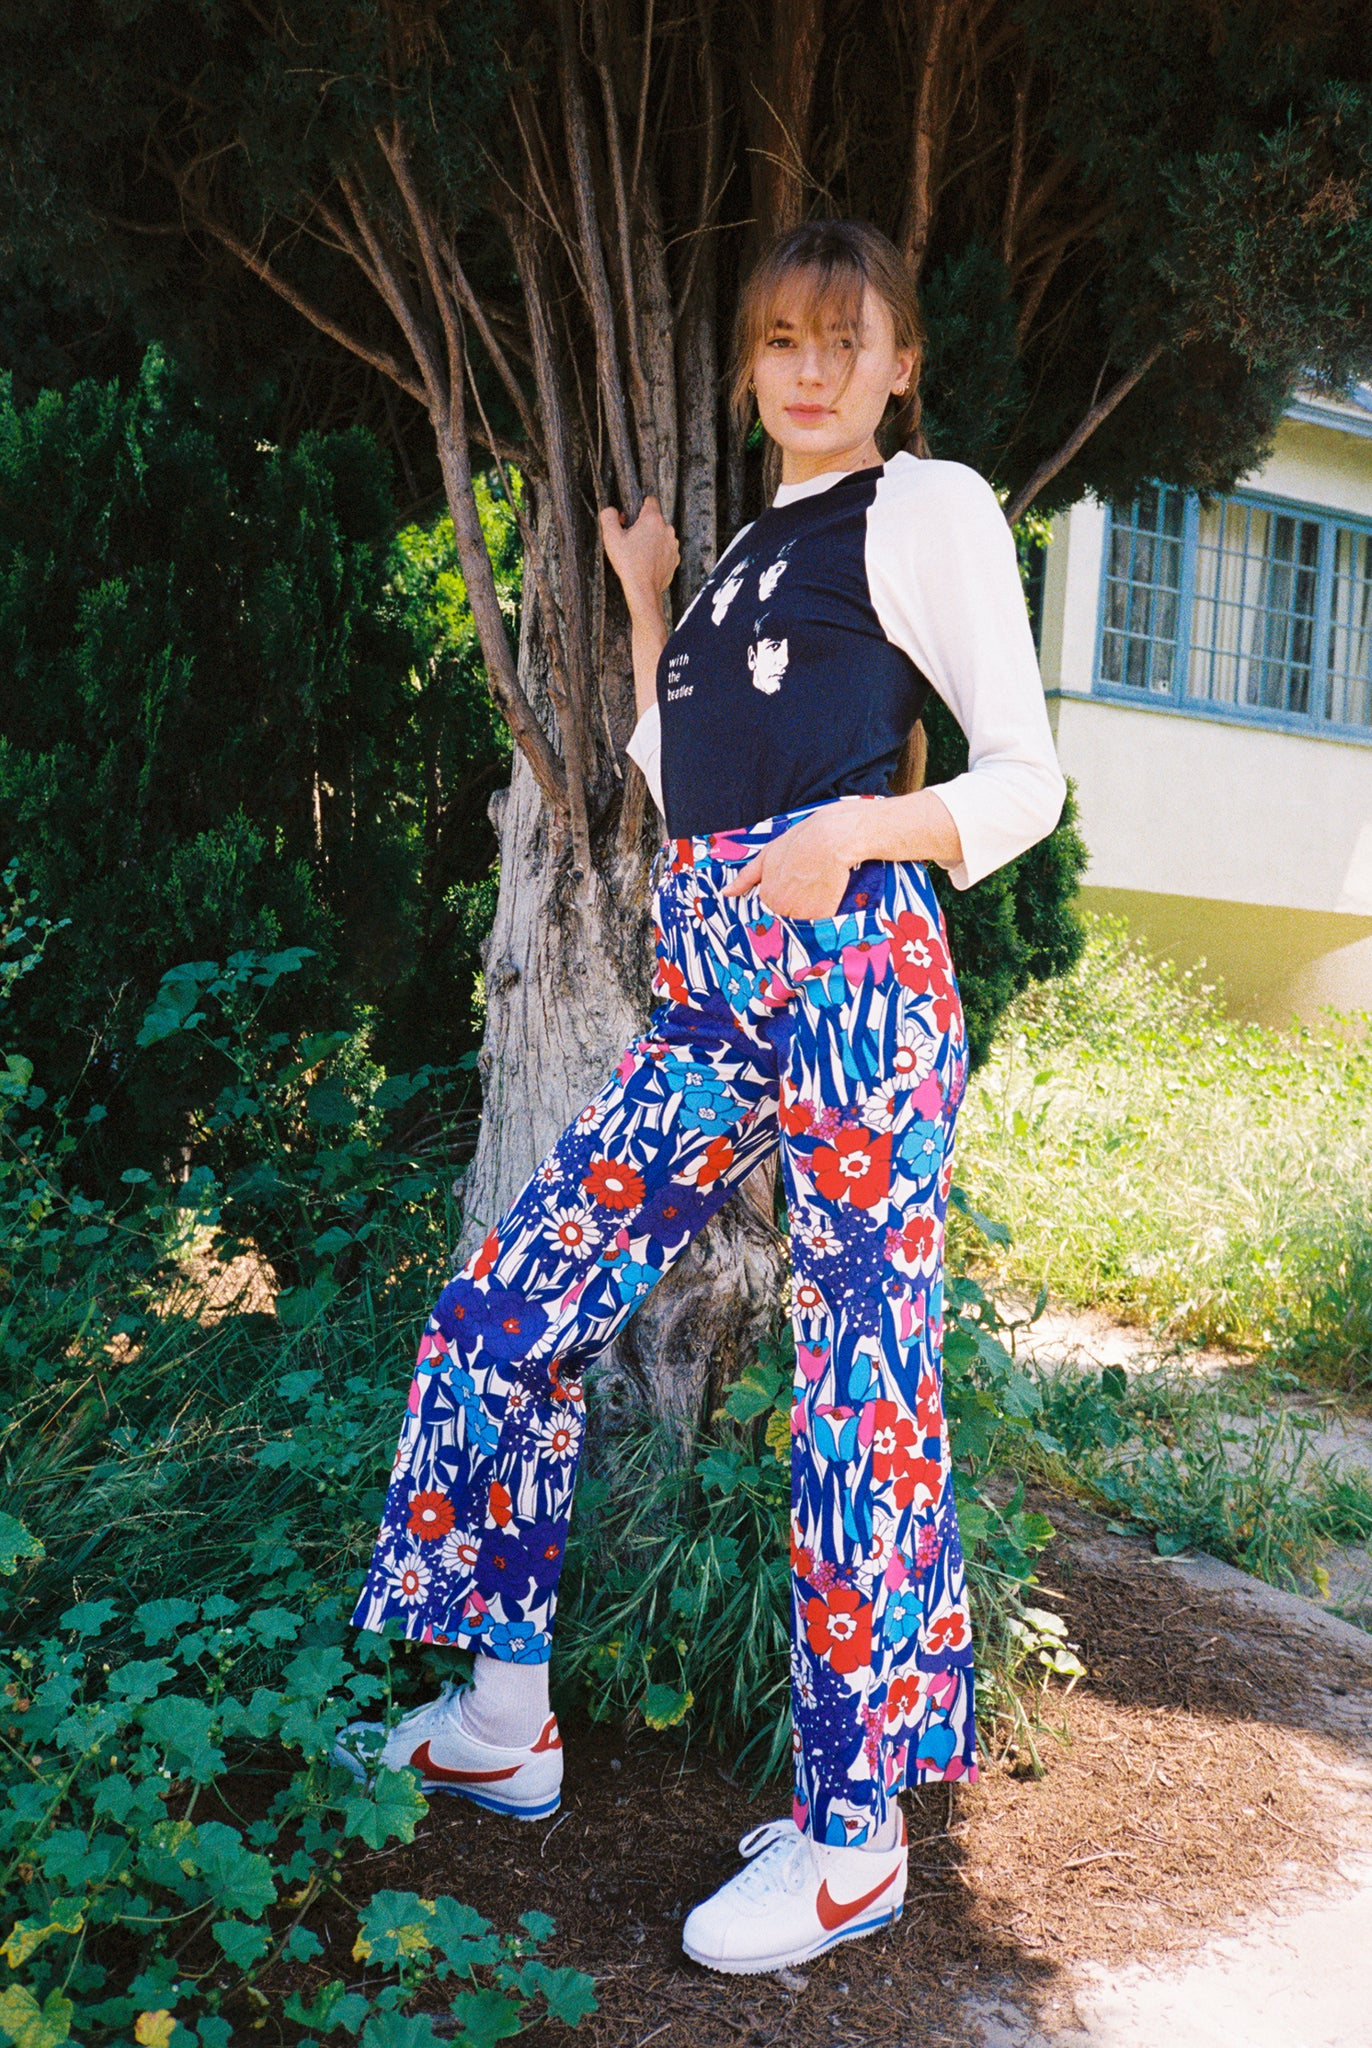 Vintage 60s hippy flower power psychedelic floral high waist flare pants